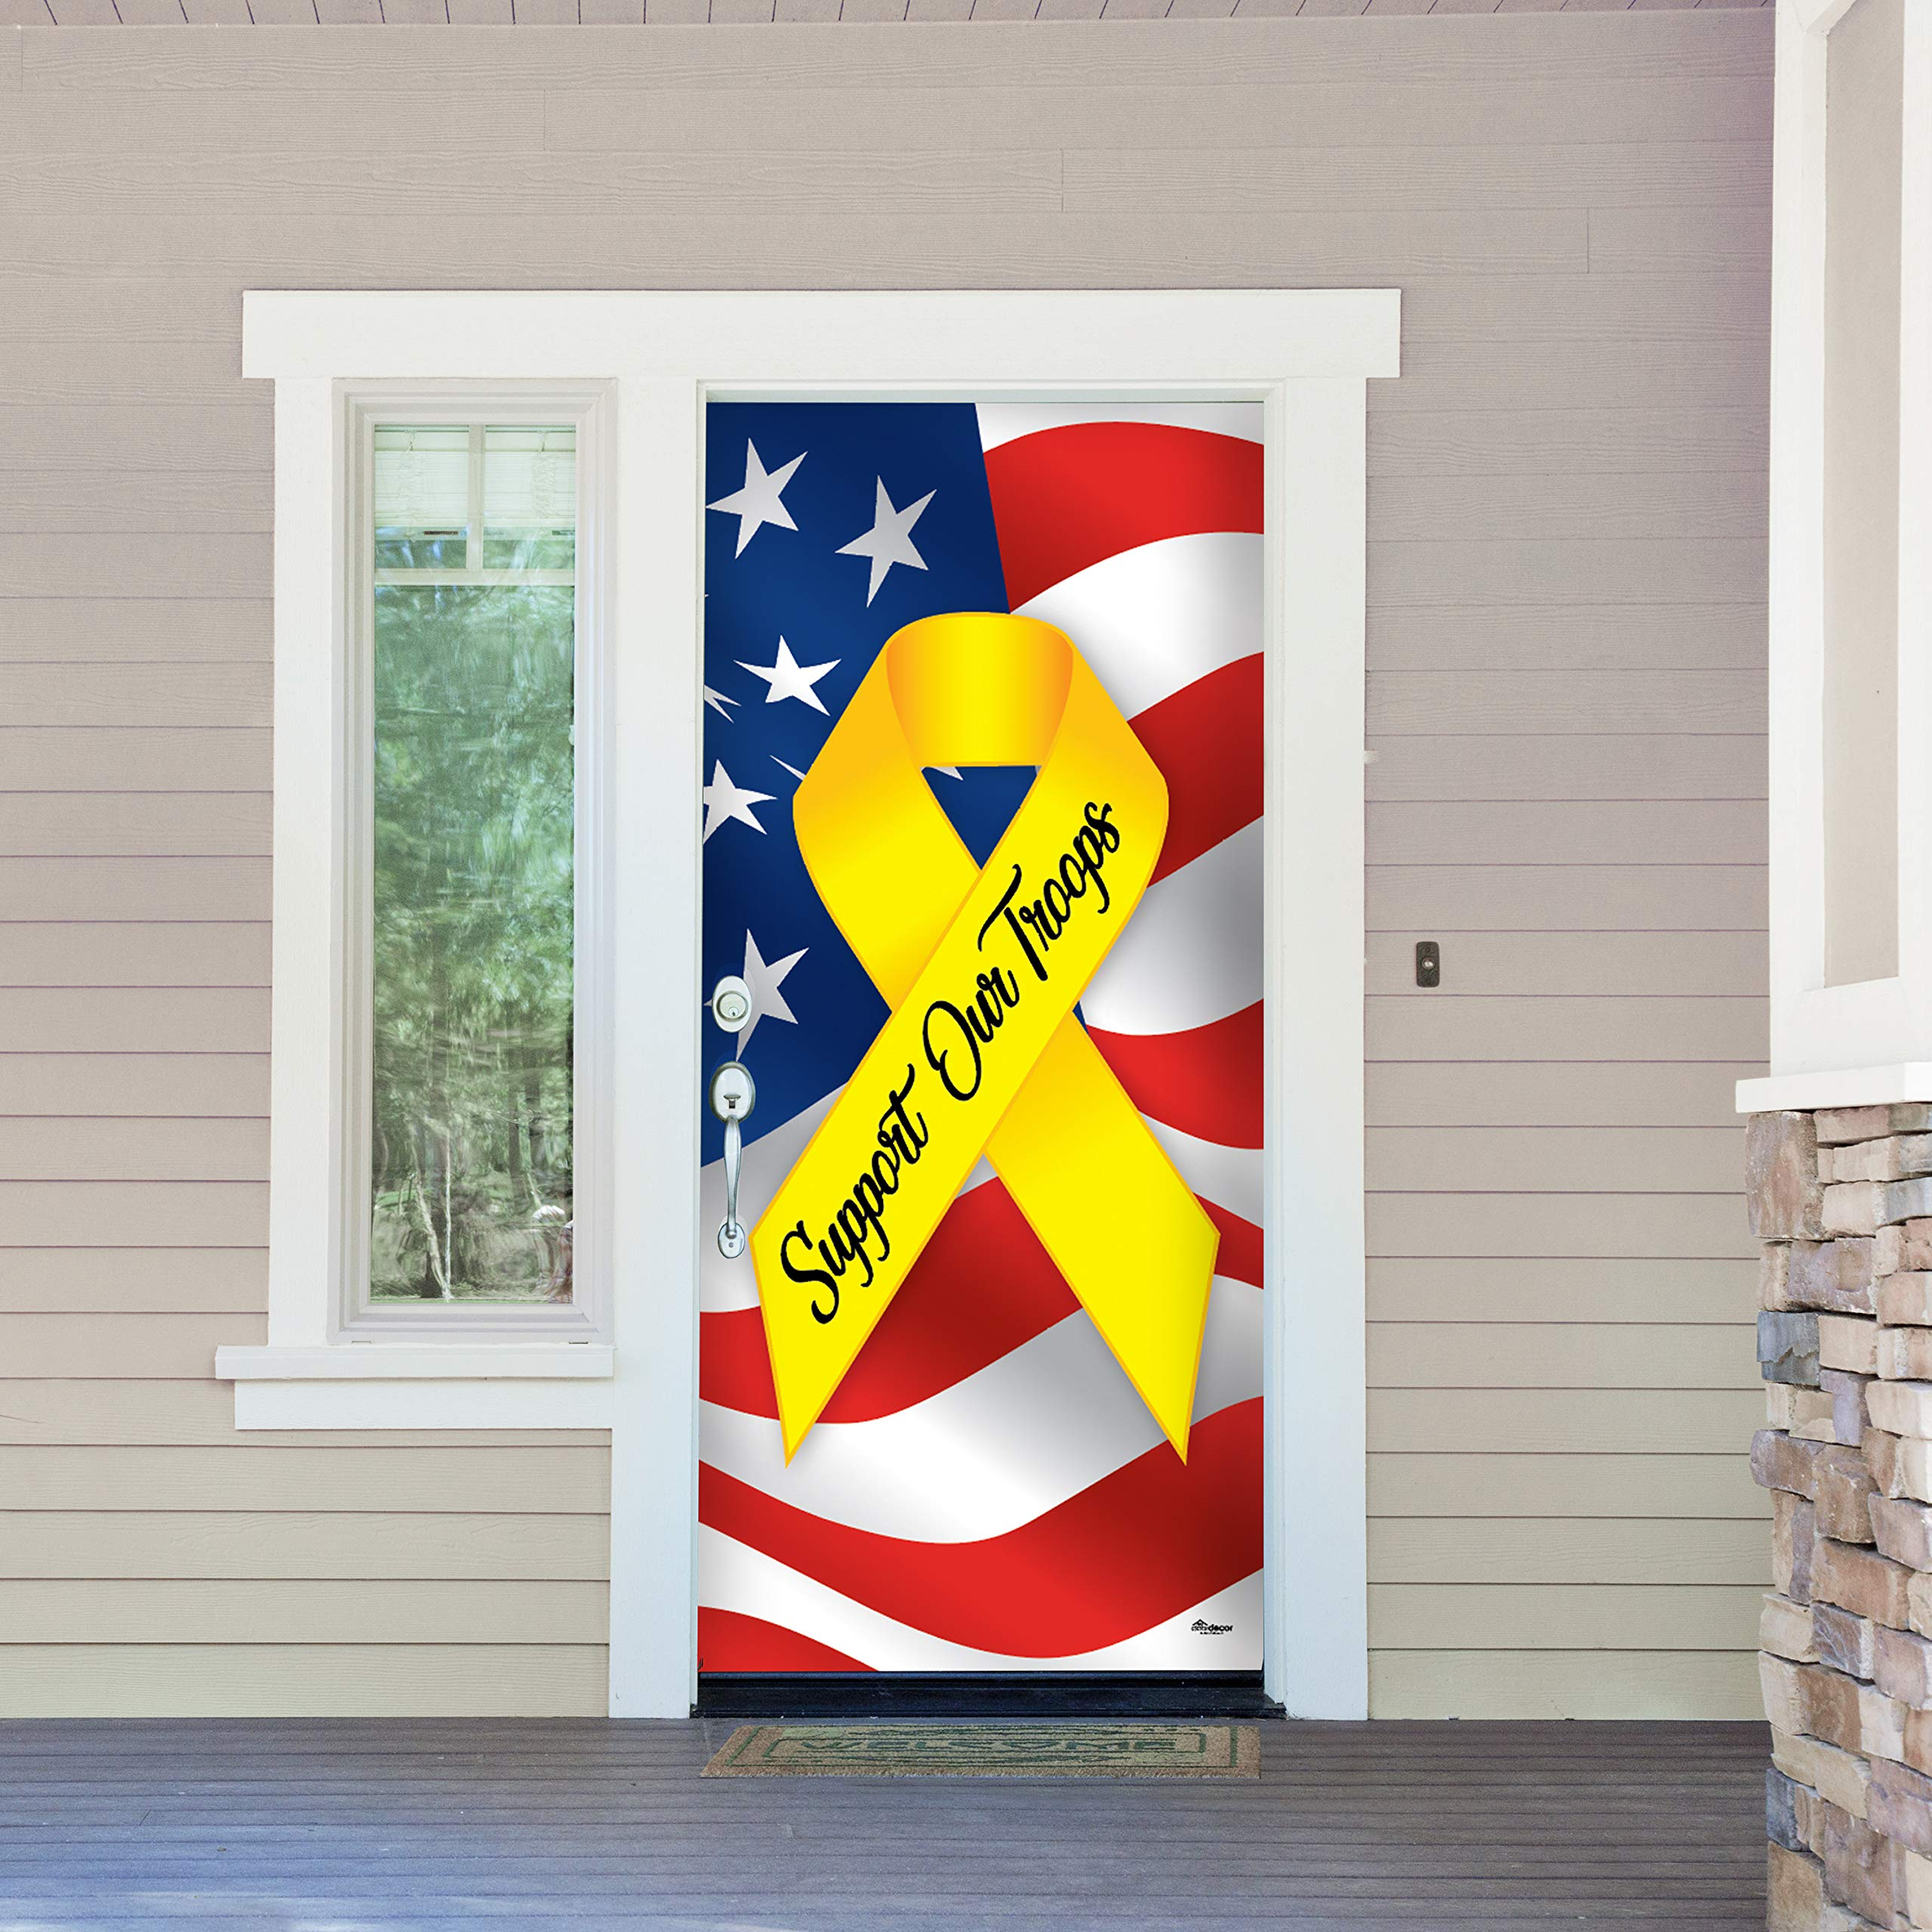 Victory Corps Support Our Troops - Patriotic Holiday Front Door Banner Mural Sign Décor 36'' x 80'' Front Door - The Original Holiday Front Door Banner Decor